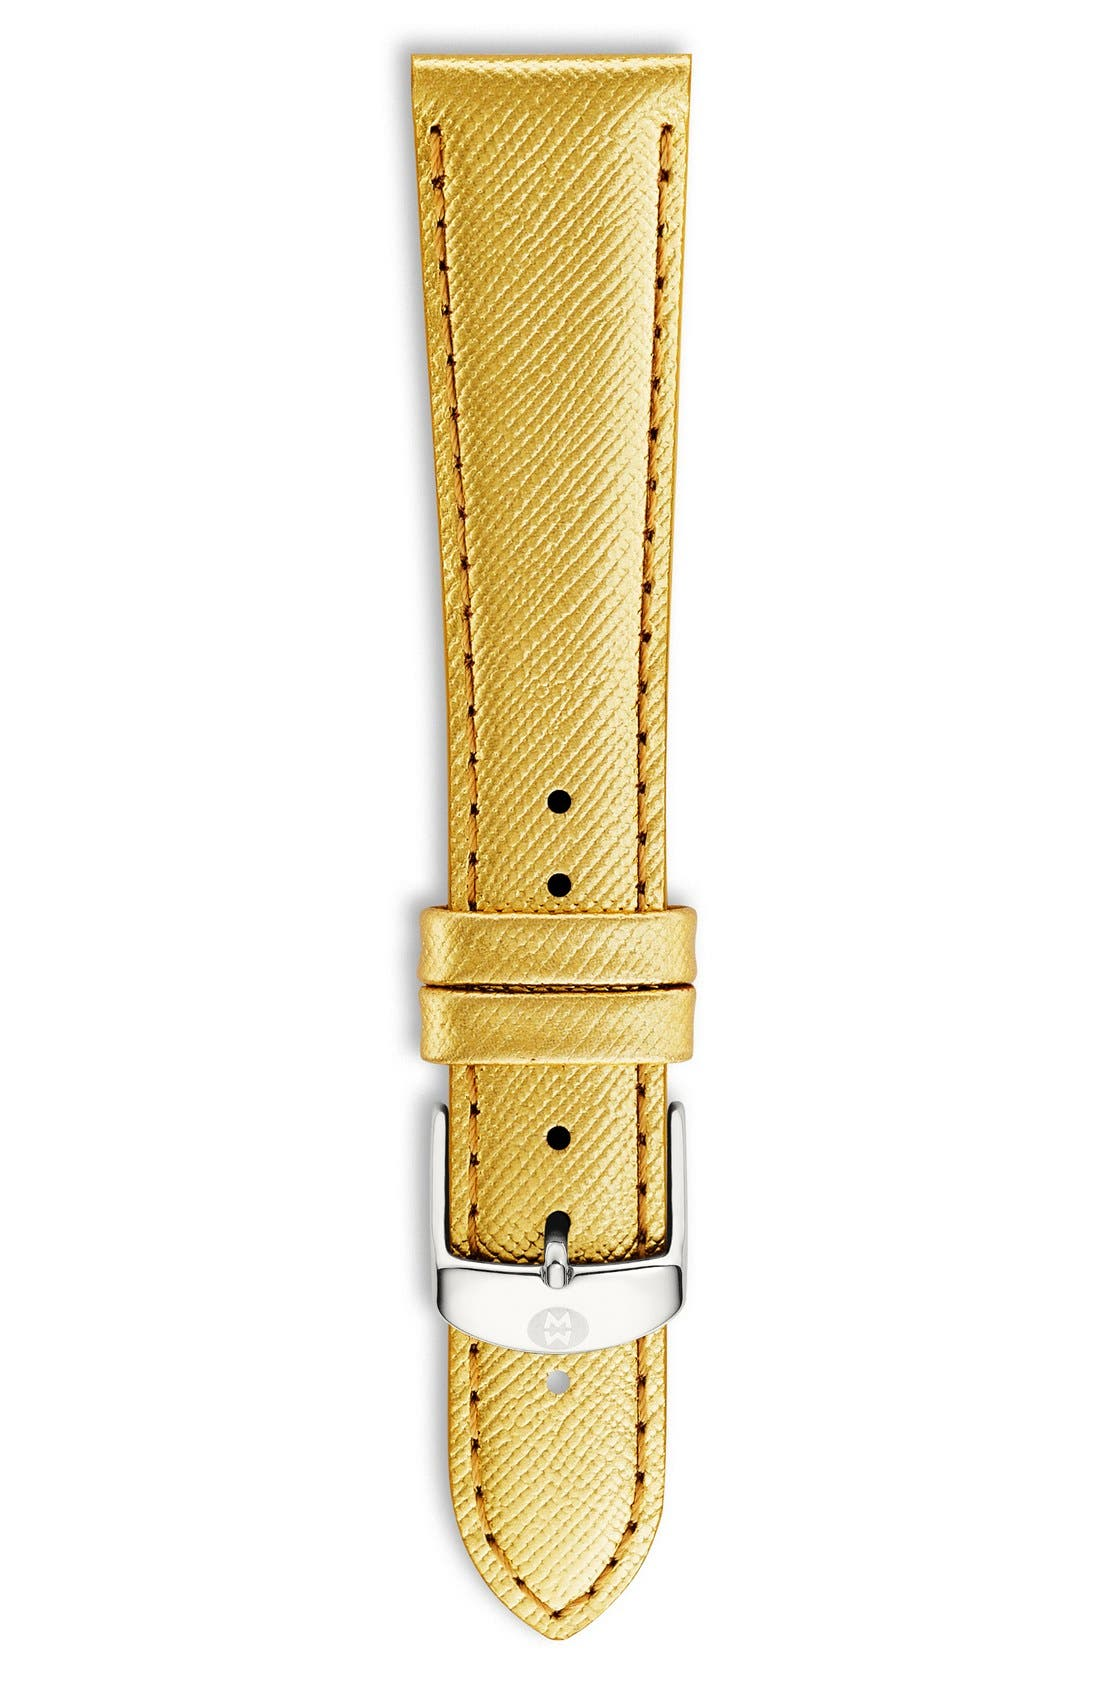 Main Image - MICHELE 18mm Metallic Leather Watch Strap